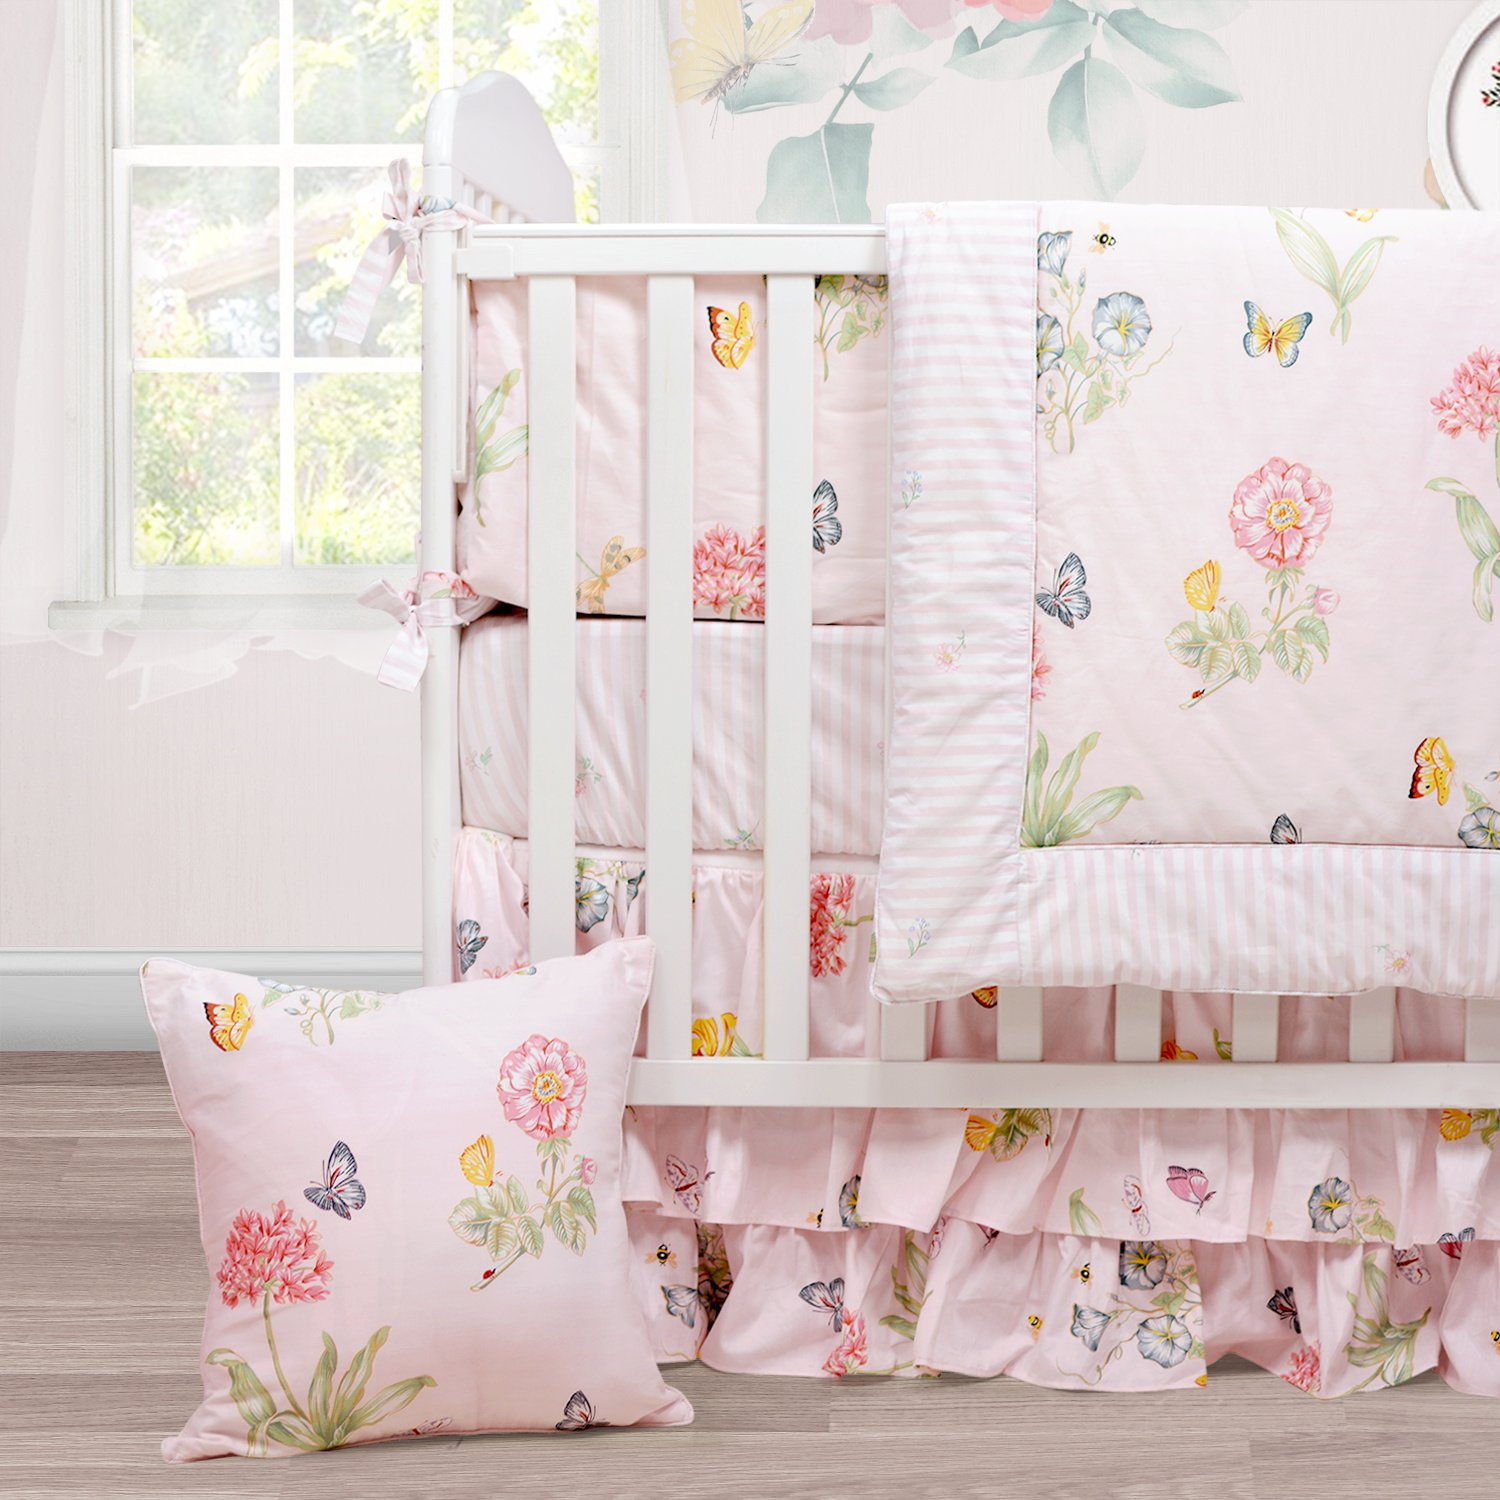 Brandream Floral Crib Bedding with Butterfly Cute Baby Bedding Girl- Extra Soft Warm Breathable and Hypoallergenic, Pink 3 Pieces Crib Bedding Set